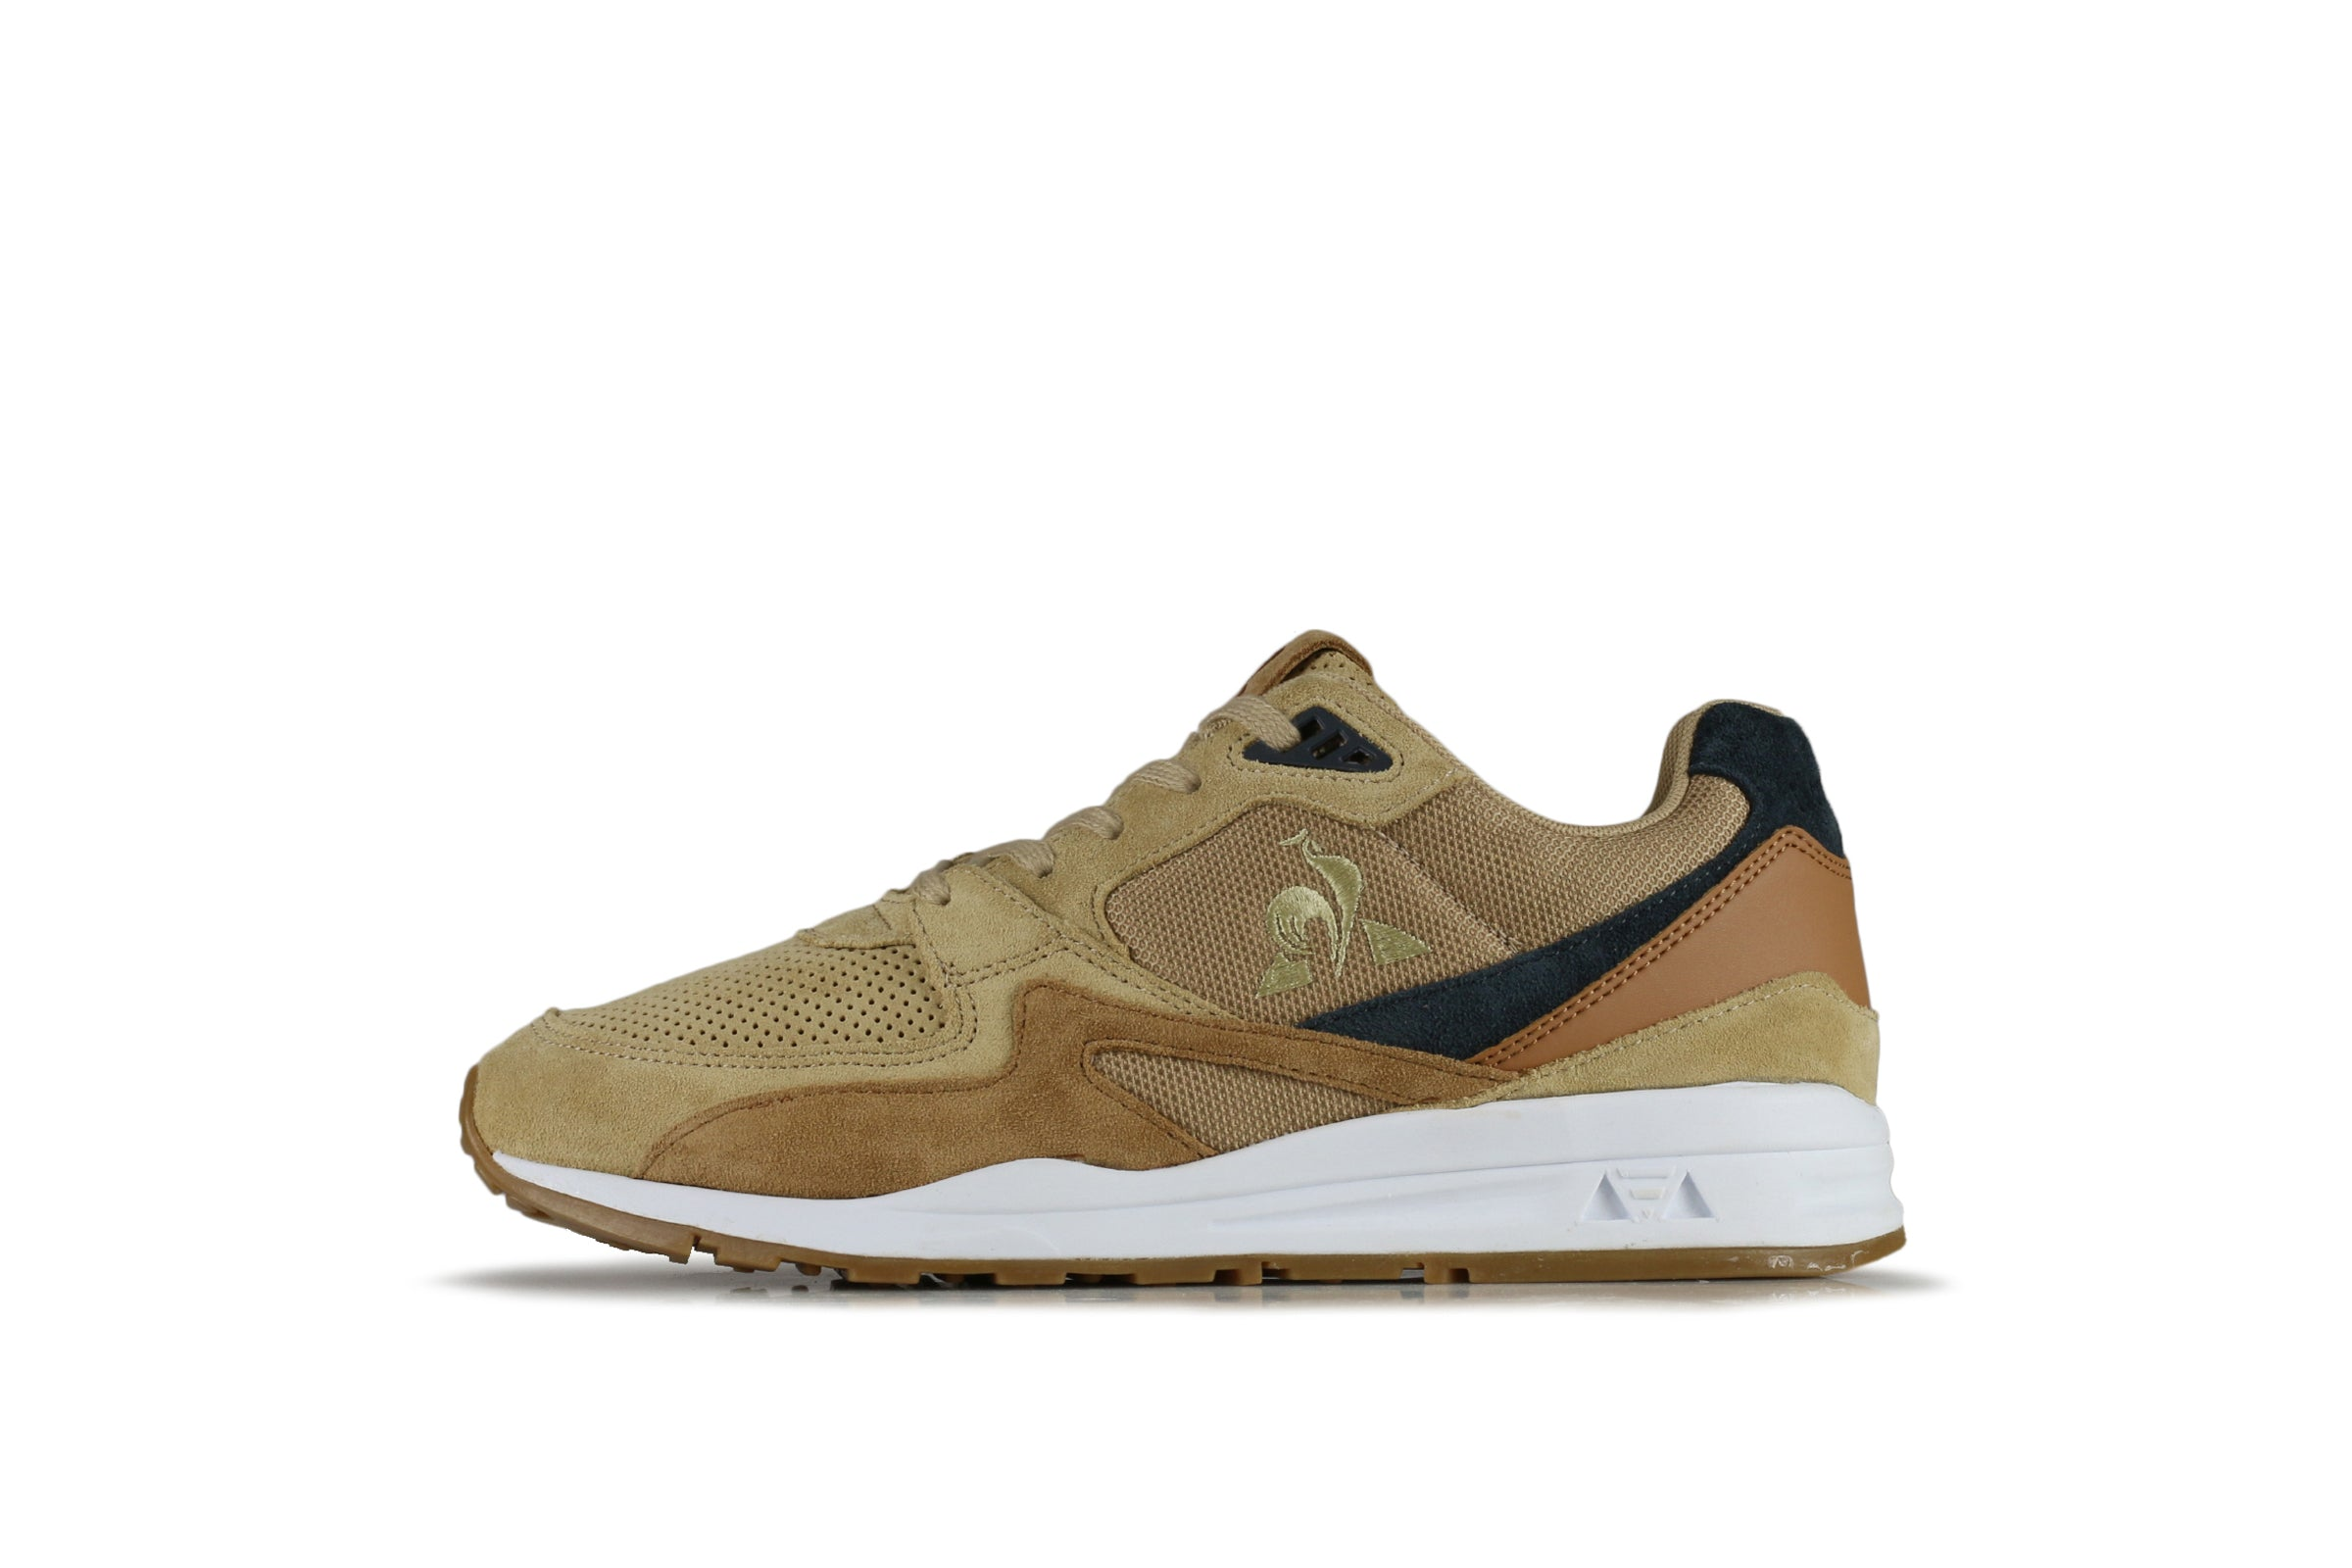 Le Coq Sportif LCS R800 Craft